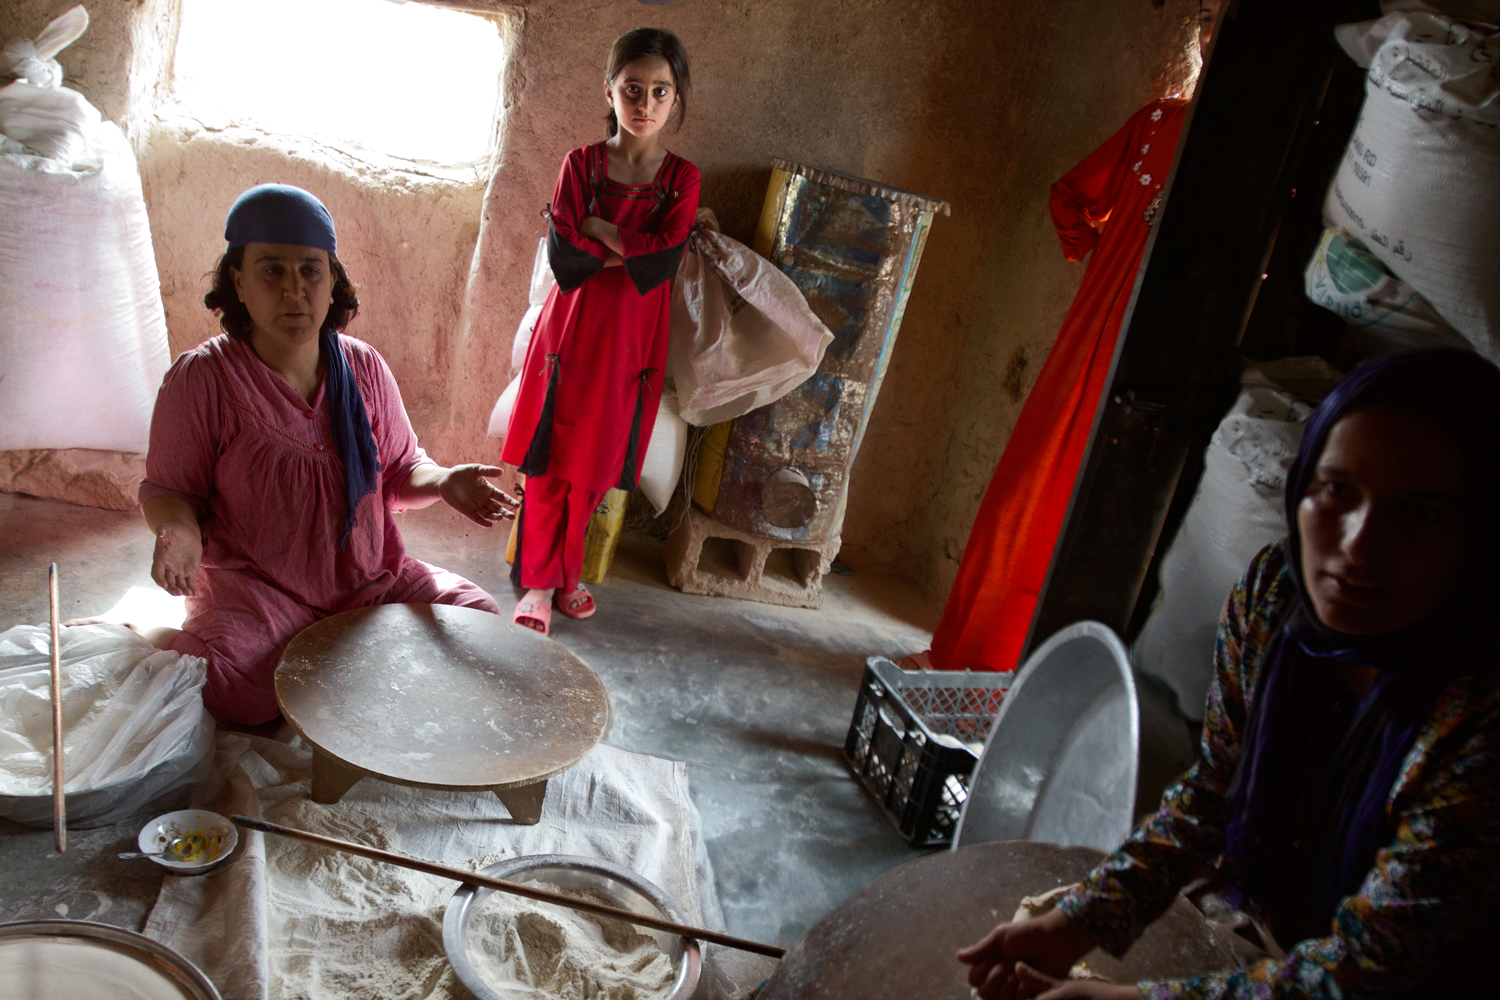 """In Kani Sard, a village two miles from Jarmo (where wheat was domesticated around 8,000 B.C.), women make bread with bags of flour marked """"Pakistan"""". Along with lack of water and limited agricultural land, dwindling government support has threatened local farming. More than half of Kani Sard's population has left for the cities in the past few years."""